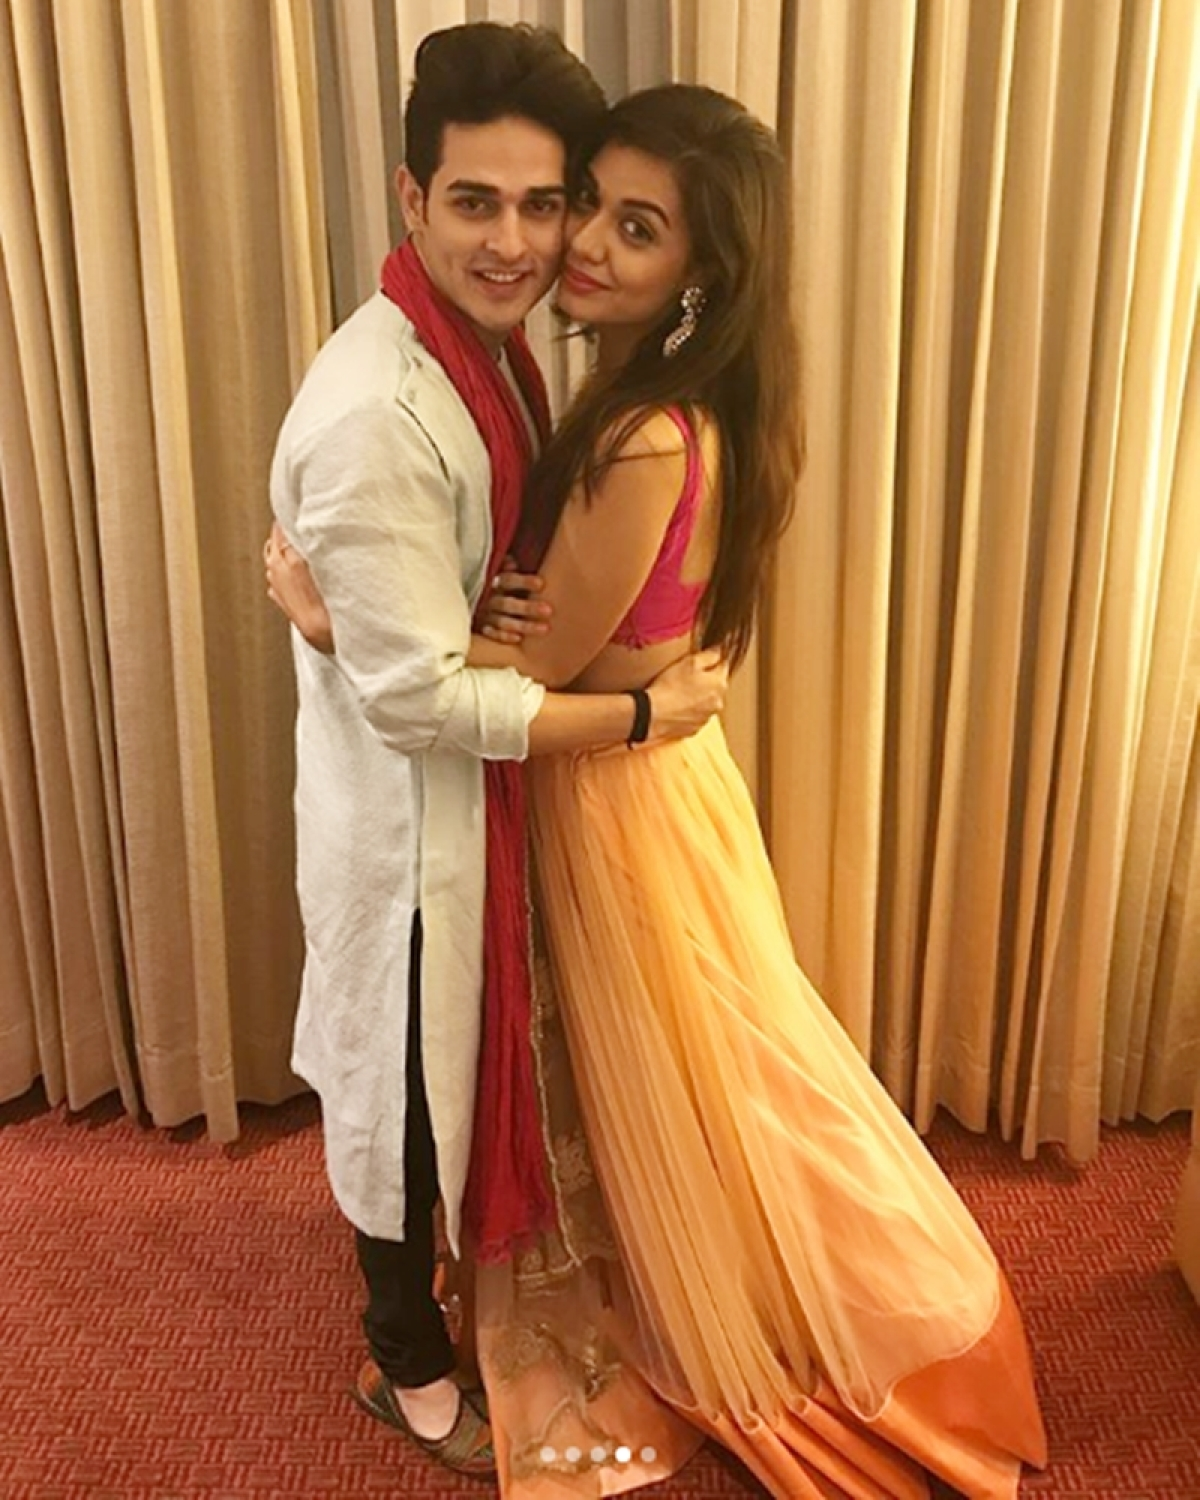 Shocking! Bigg Boss 11 contestant Priyank Sharma's girlfriend Divya Agarwal reveals about his 'SECRET JAAN' in USA